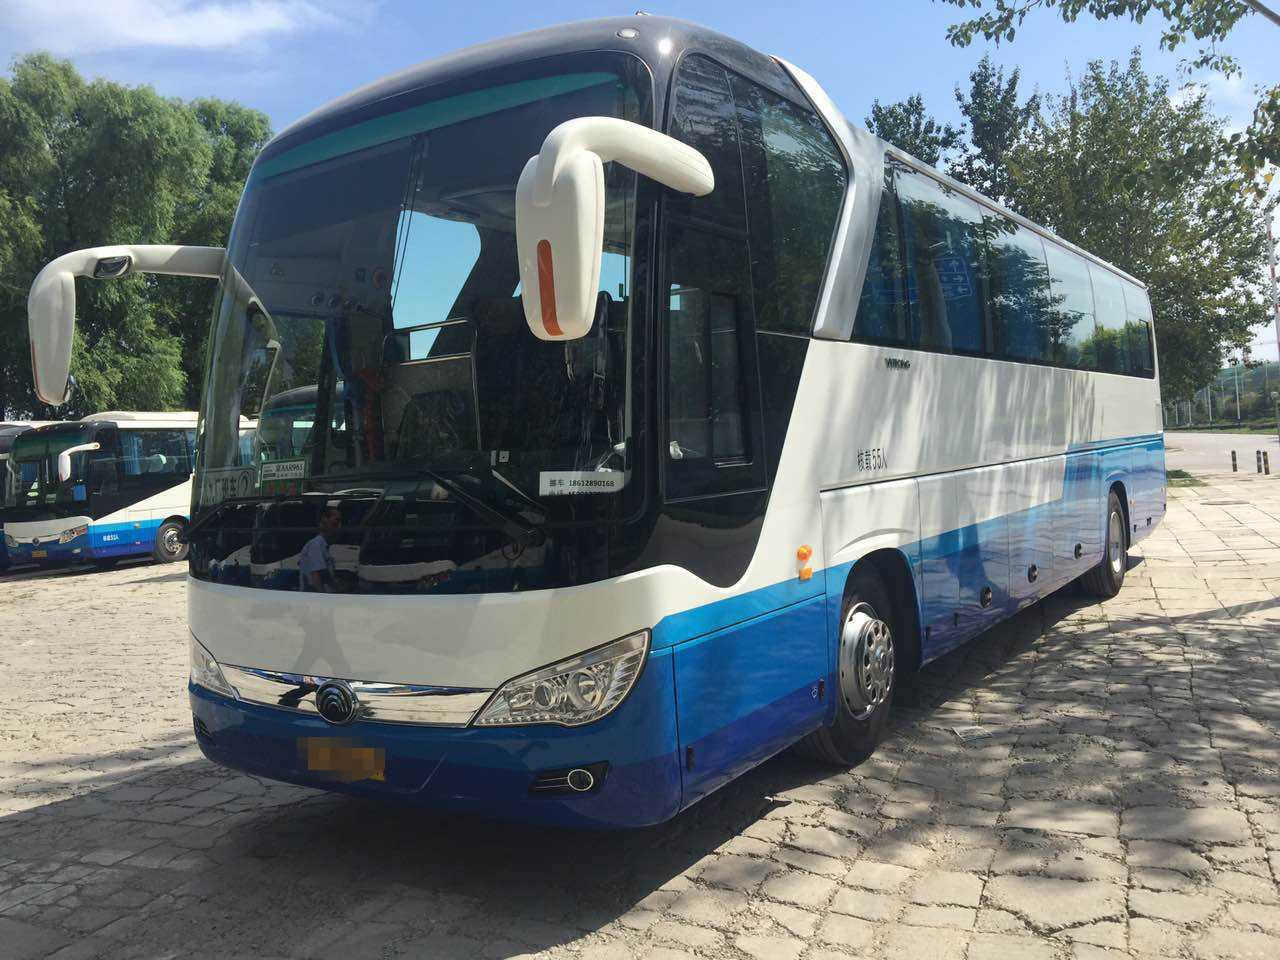 China Supplier 55 Seats Yutong Used Luxury Coaches Euro 4 Emission Standard 100 Km/H Max Speed